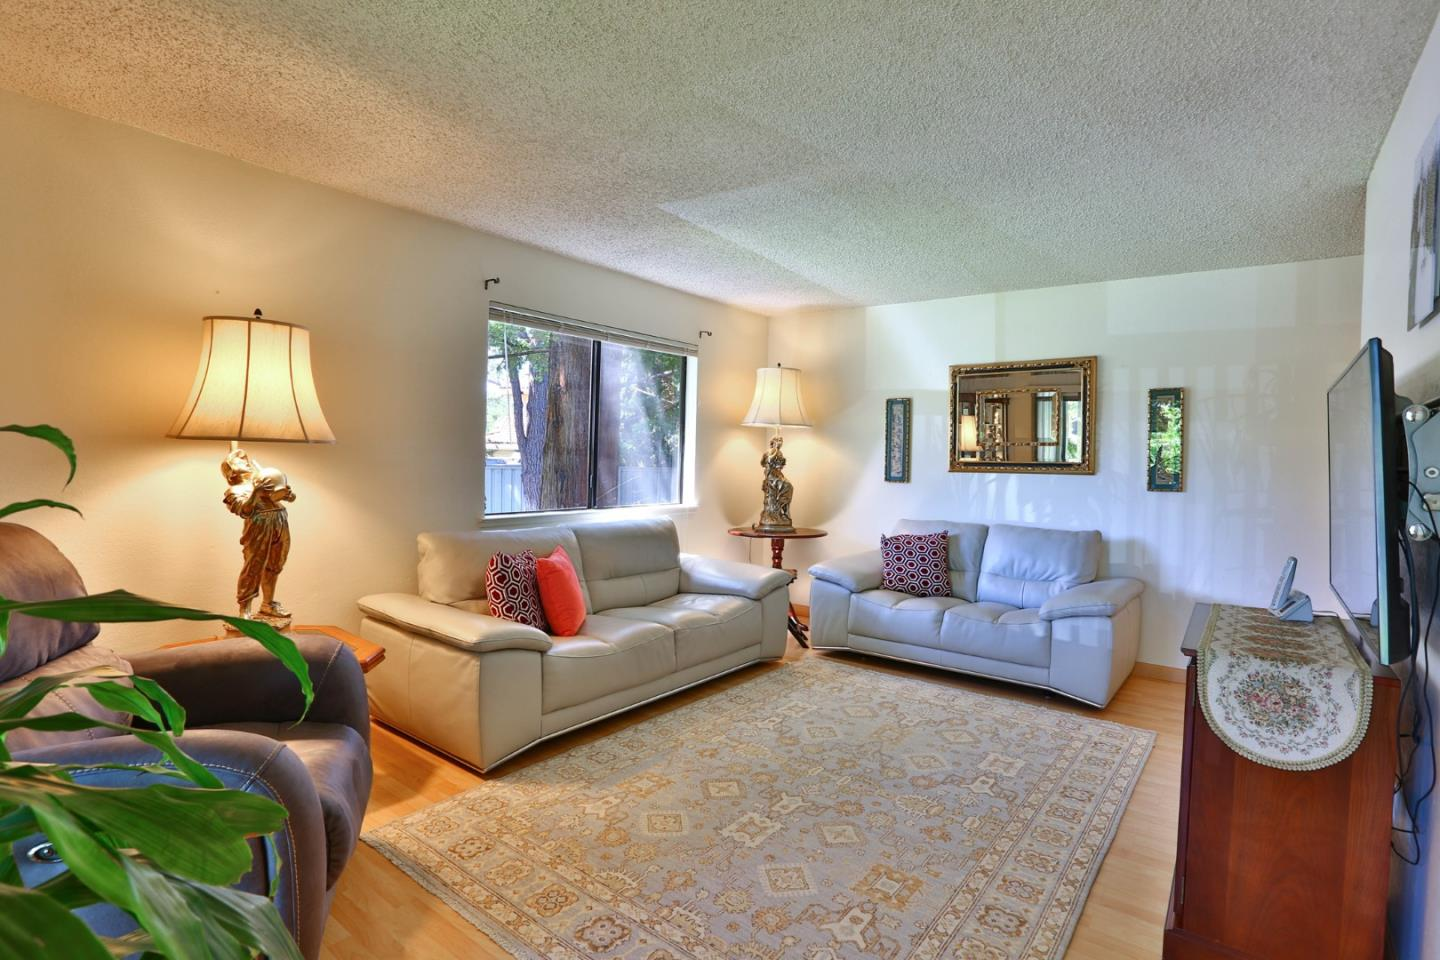 Serene oasis in the middle of Silicon Valley. Beautifully remodeled two bed/1 bath bright end unit with a detached 1 car garage. This first floor home features a balcony overlooking the mature trees, granite counter tops, remodeled bathroom and a huge master suite with a walk-in closet. The Oak Park community includes a pool, and an inviting club house. Excellent Mountain View and Los Altos schools: Bubb Elementary, Isaac Newton Graham Middle, and Los Altos High School. This home is perfectly located on the west side of Mountain View, near Castro Street, Whole Foods, San Antonio Shopping Center, Google and other high tech companies.